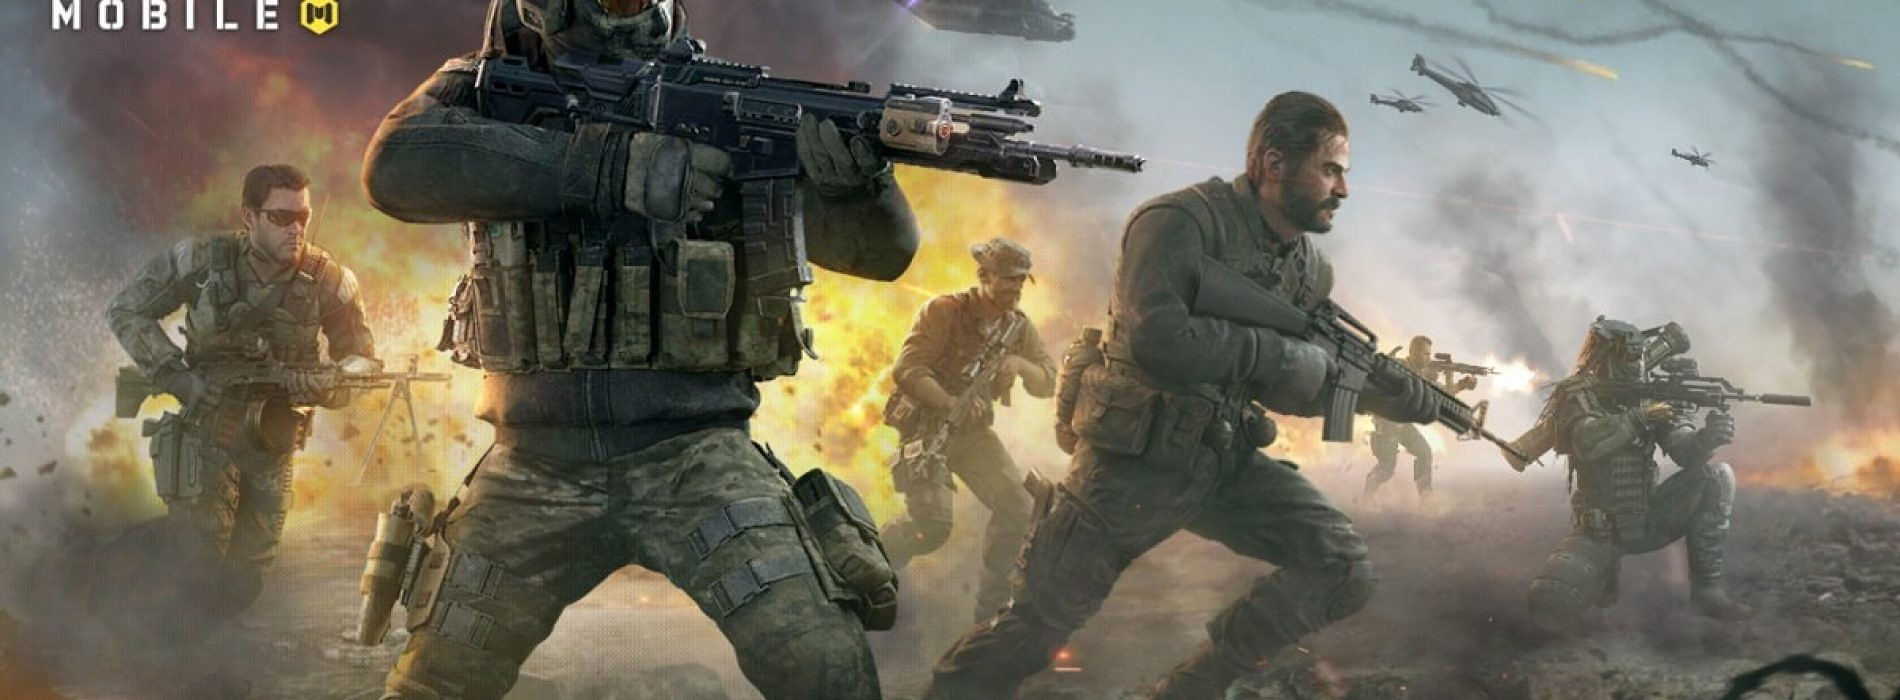 call of duty wallpaper 4k android download